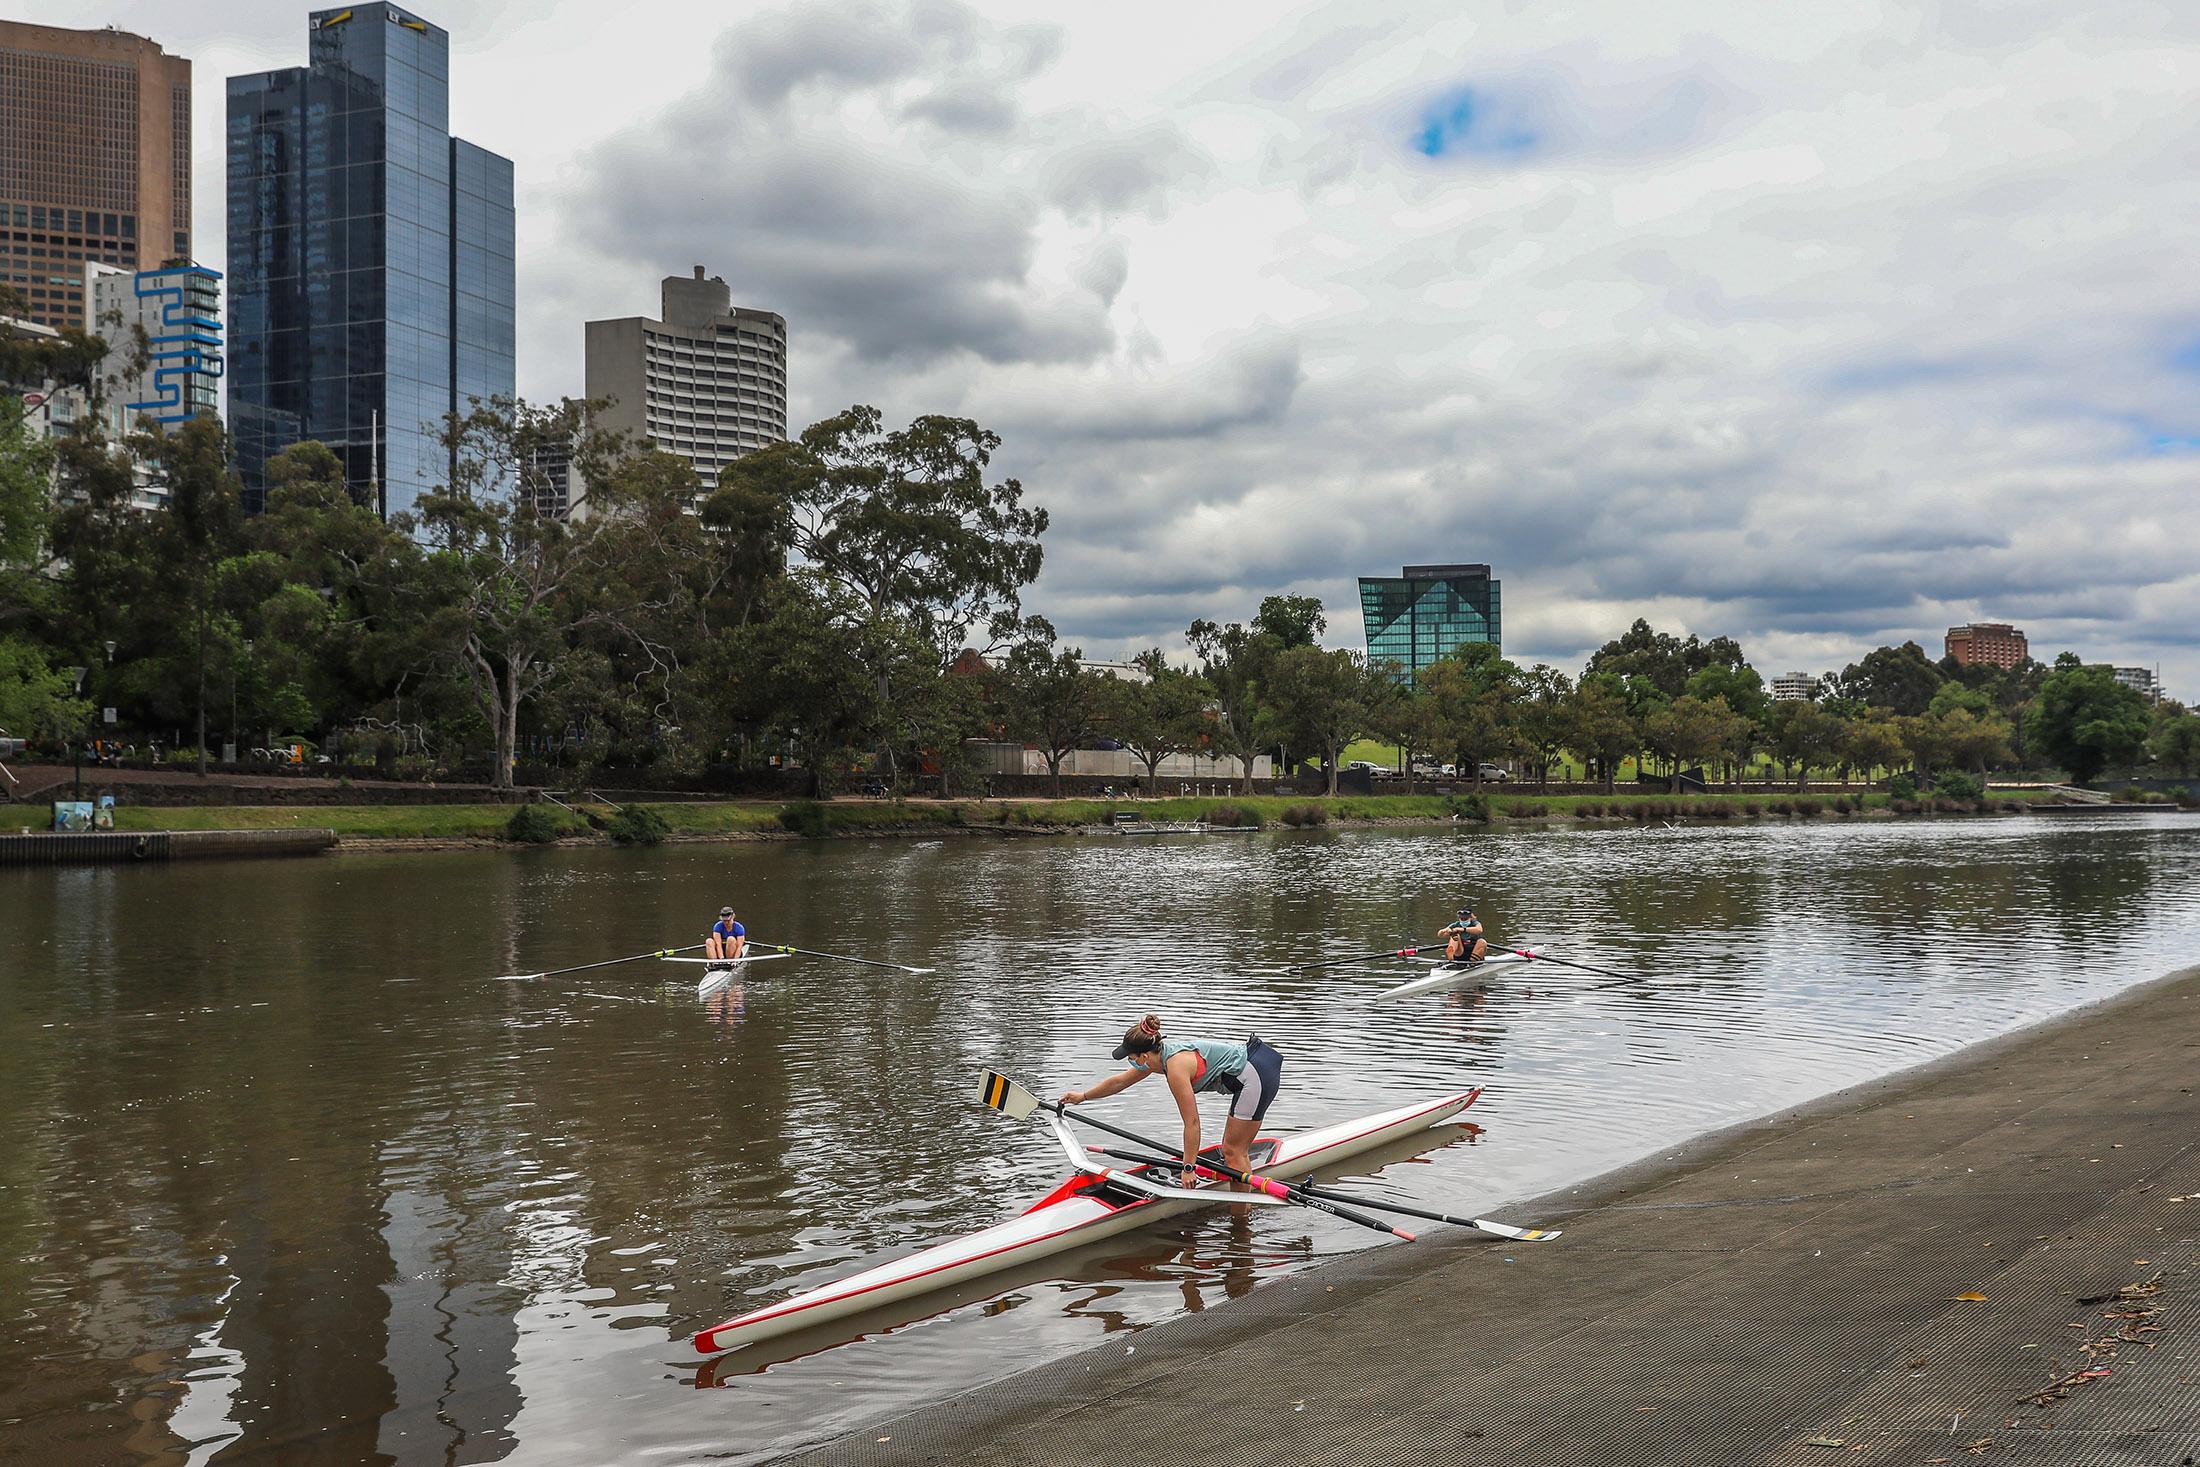 Rowers are seen about to leave the banks of the Yarra river as they go rowing on November 6, in Melbourne, Australia.